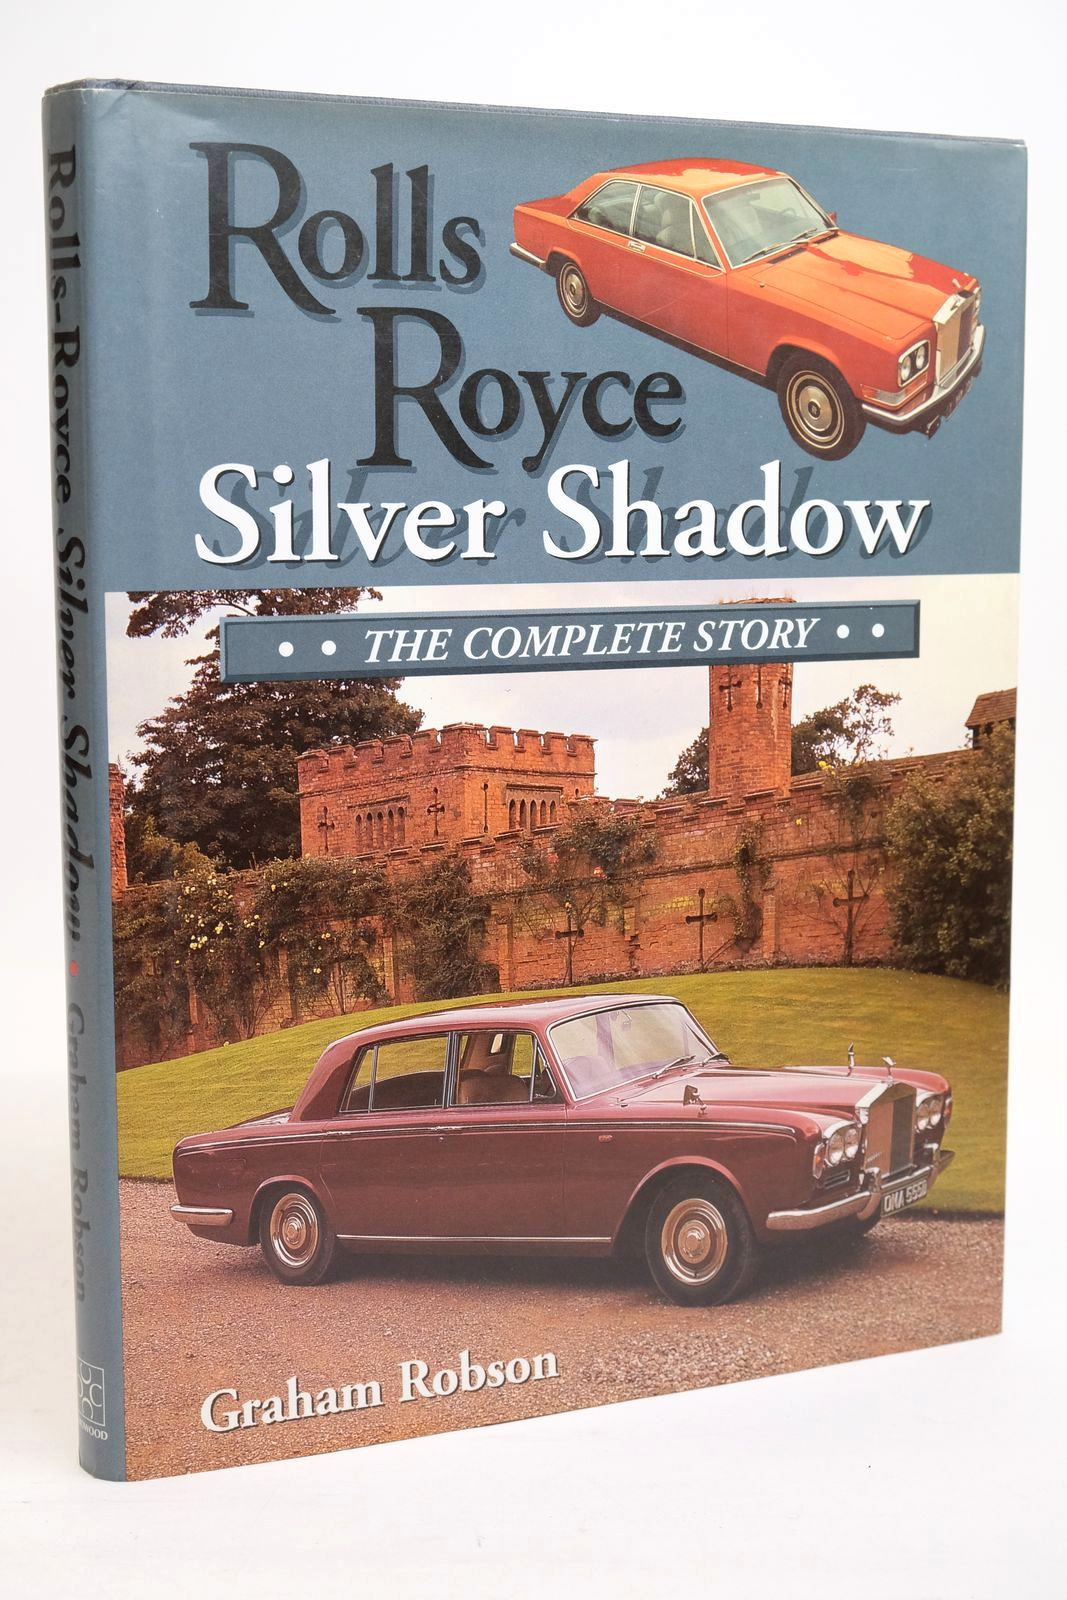 Photo of ROLLS-ROYCE SILVER SHADOW THE COMPLETE STORY written by Robson, Graham published by The Crowood Press (STOCK CODE: 1321213)  for sale by Stella & Rose's Books